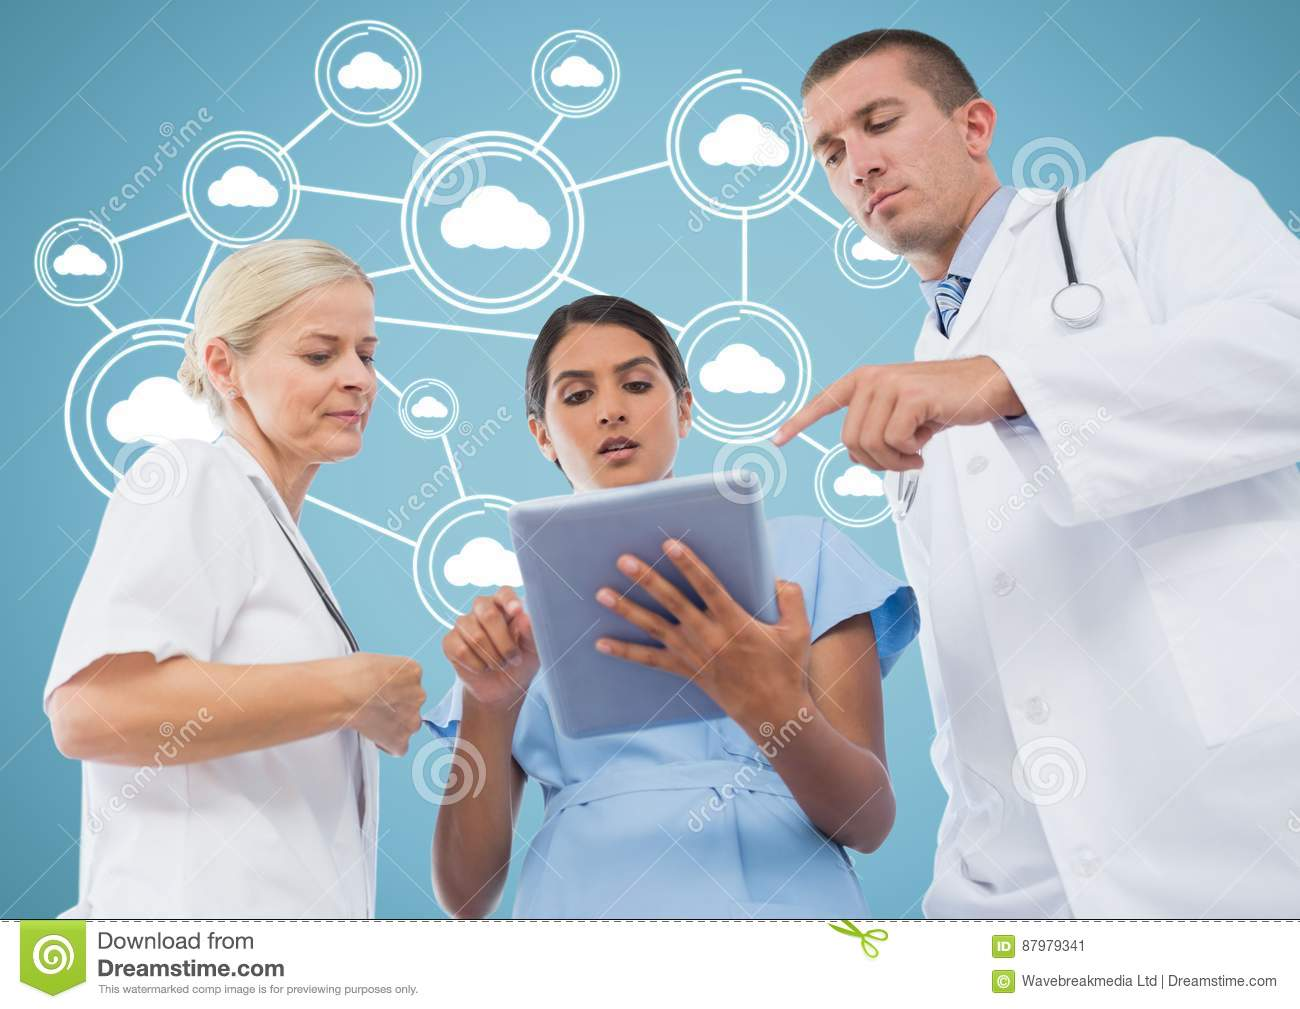 Male and female doctors discussing over digital tablet with cloud computing icons in background